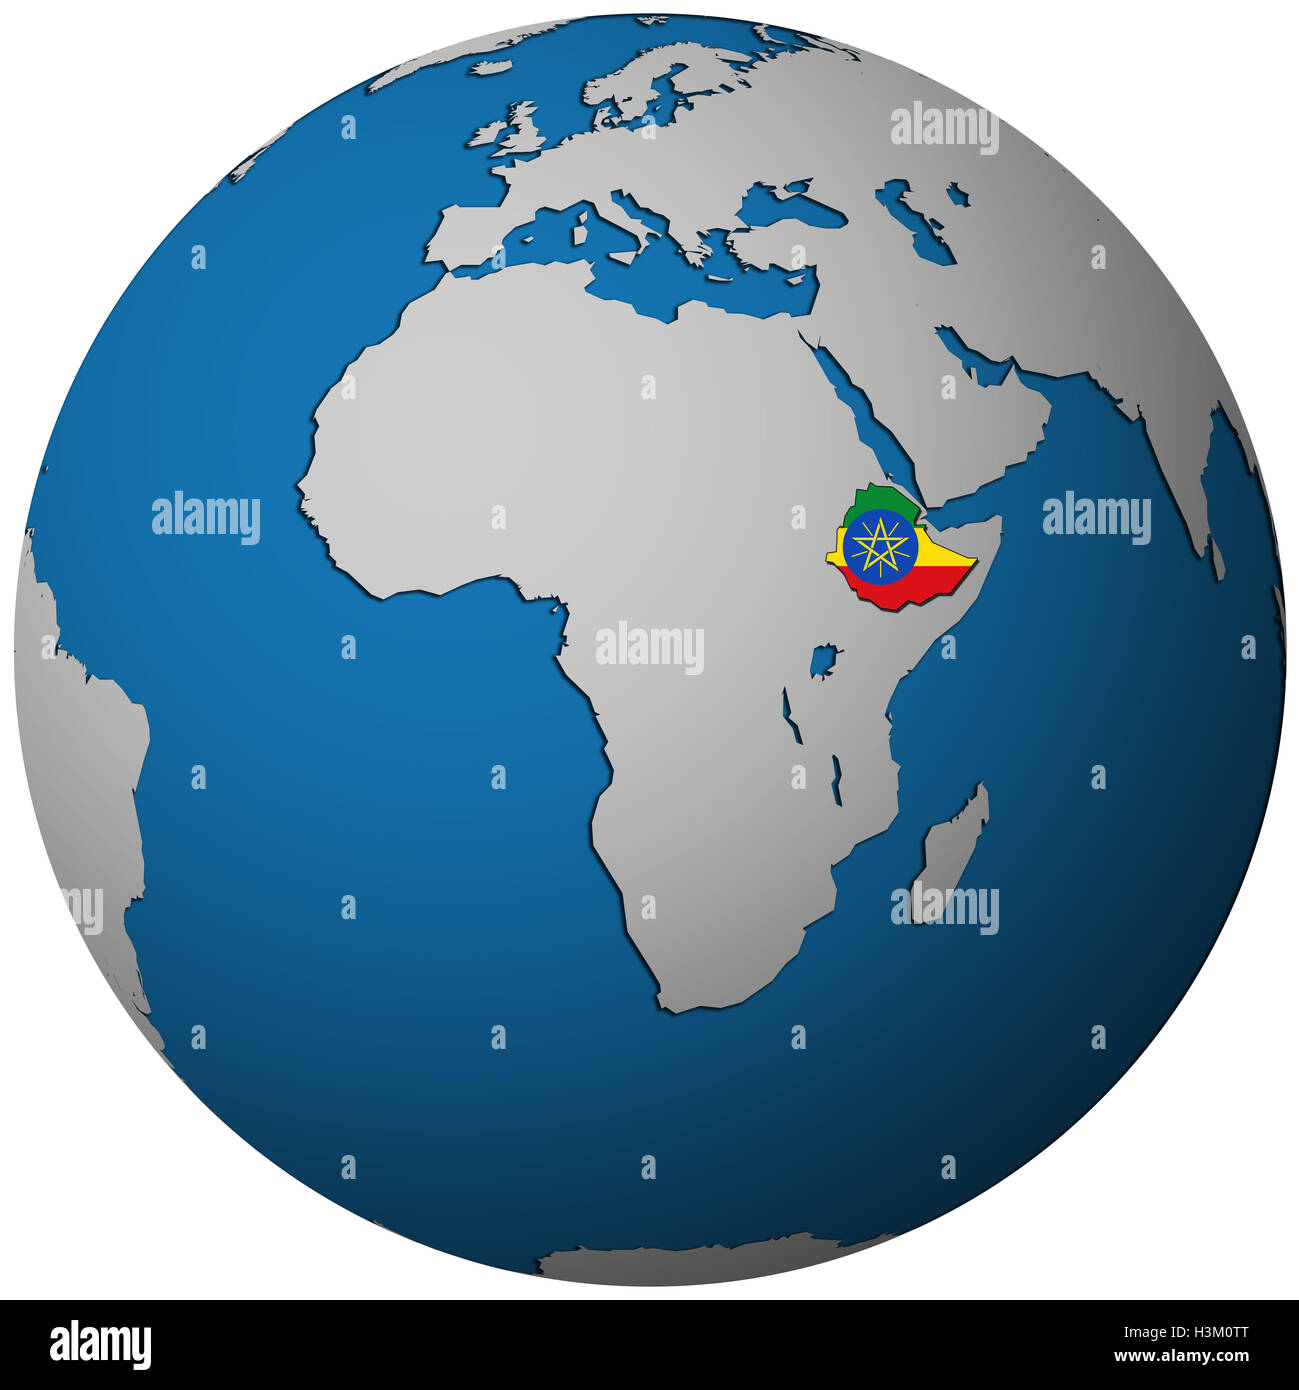 Picture of: Ethiopia Territory With Flag On Map Of Globe Stock Photo Alamy